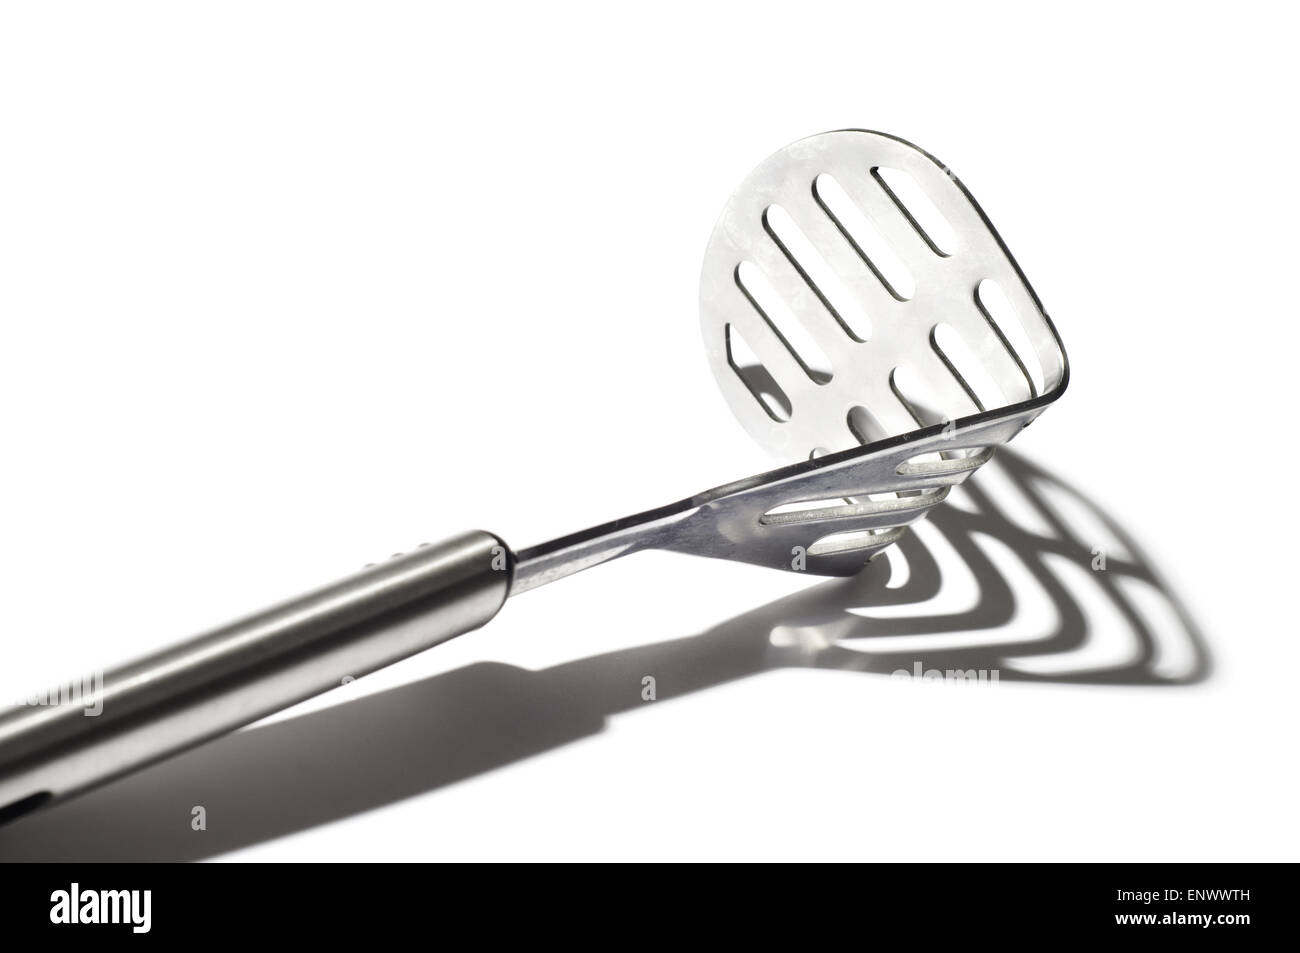 Kitchenware and strong shaddow - Stock Image